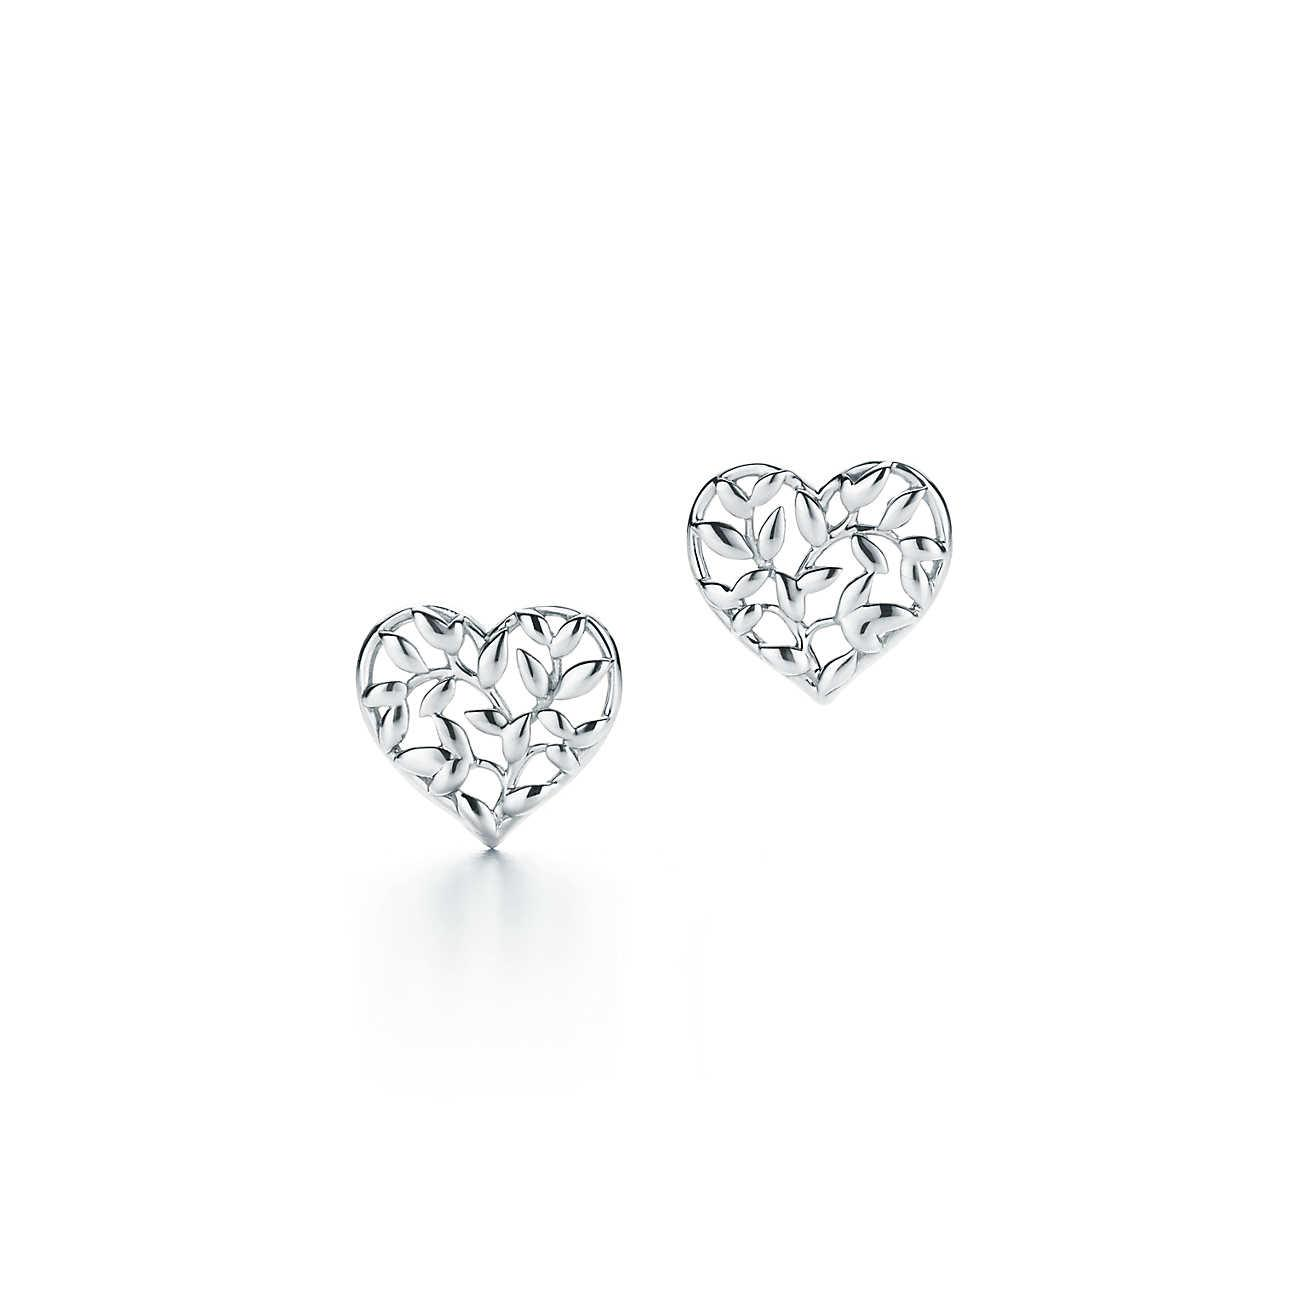 Tiffany Co Women S Green Paloma Pico Olive Leaf Heart Earrings In Sterling Silver